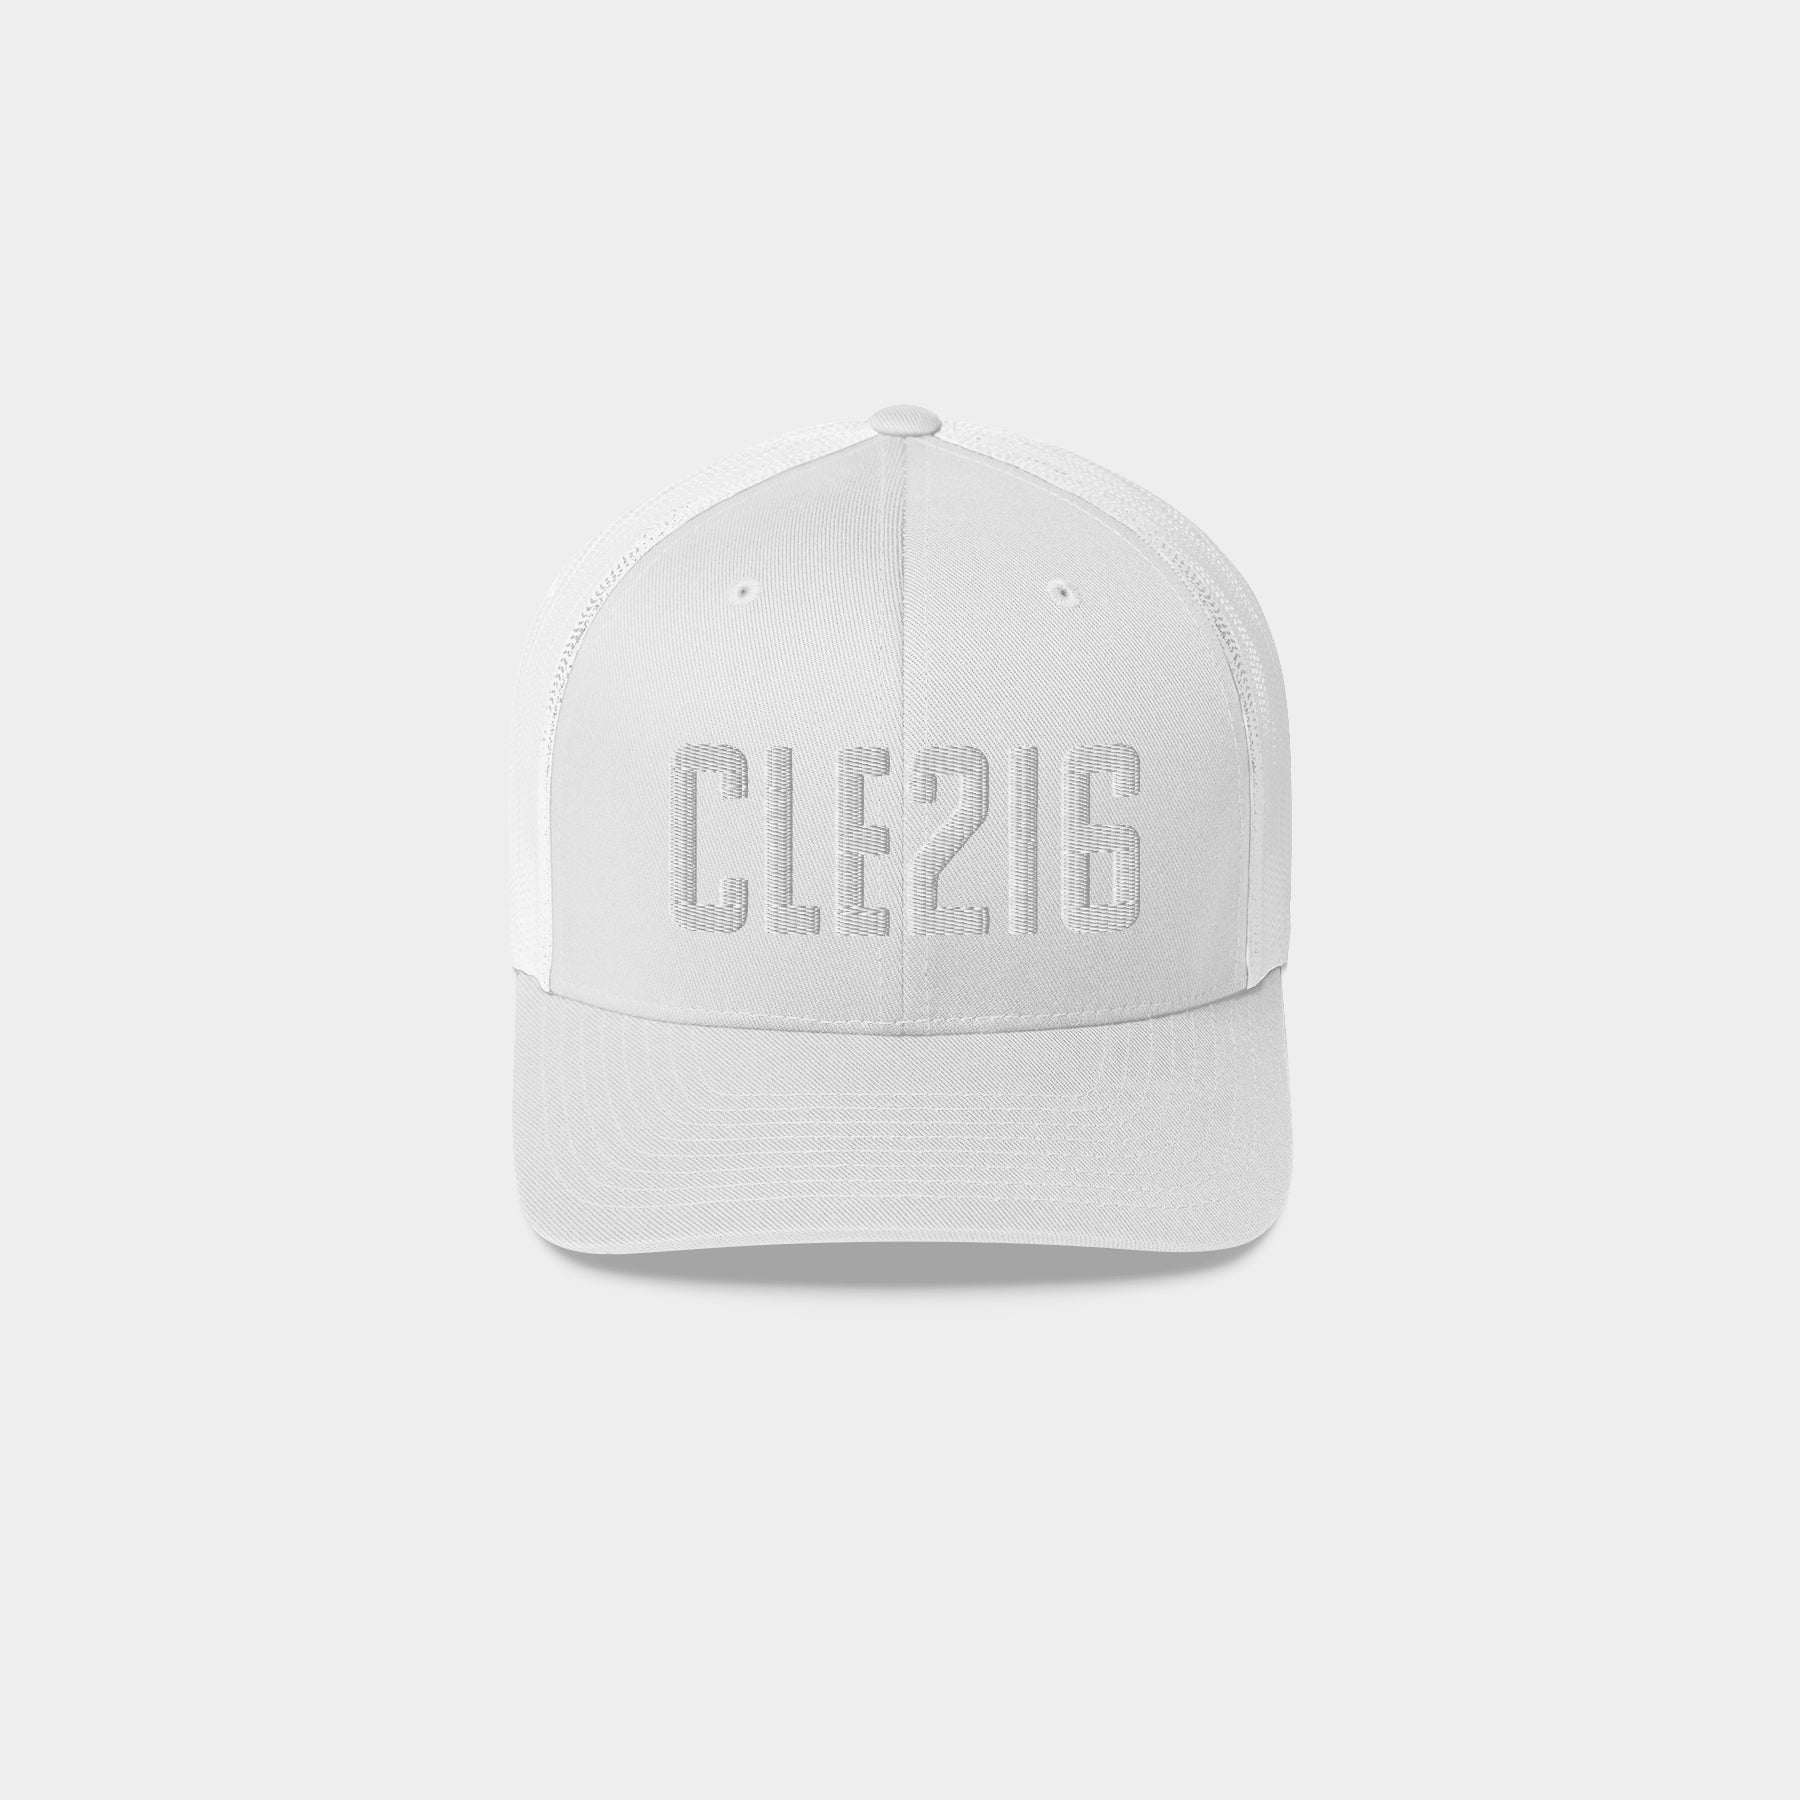 CLE216 Retro Trucker Hat, White